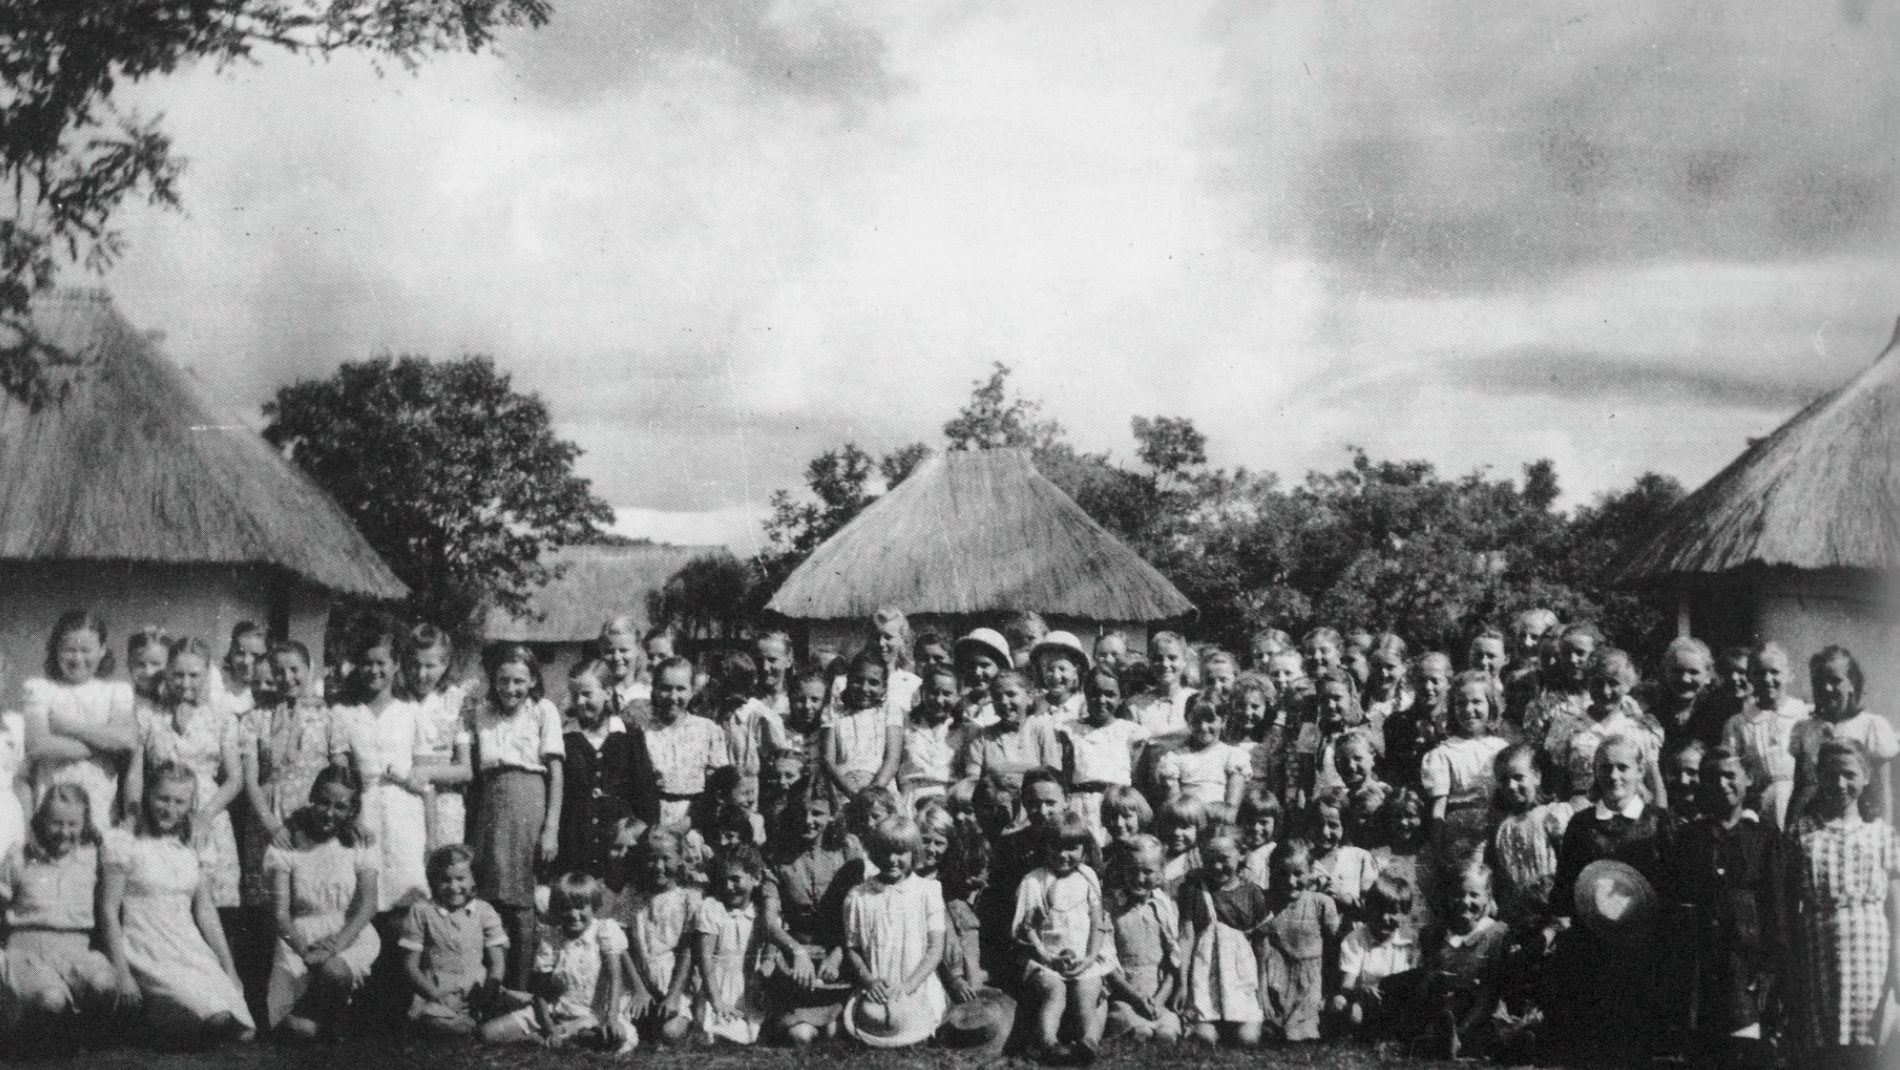 Polish children in Tengeru, Tanzania in 1946.